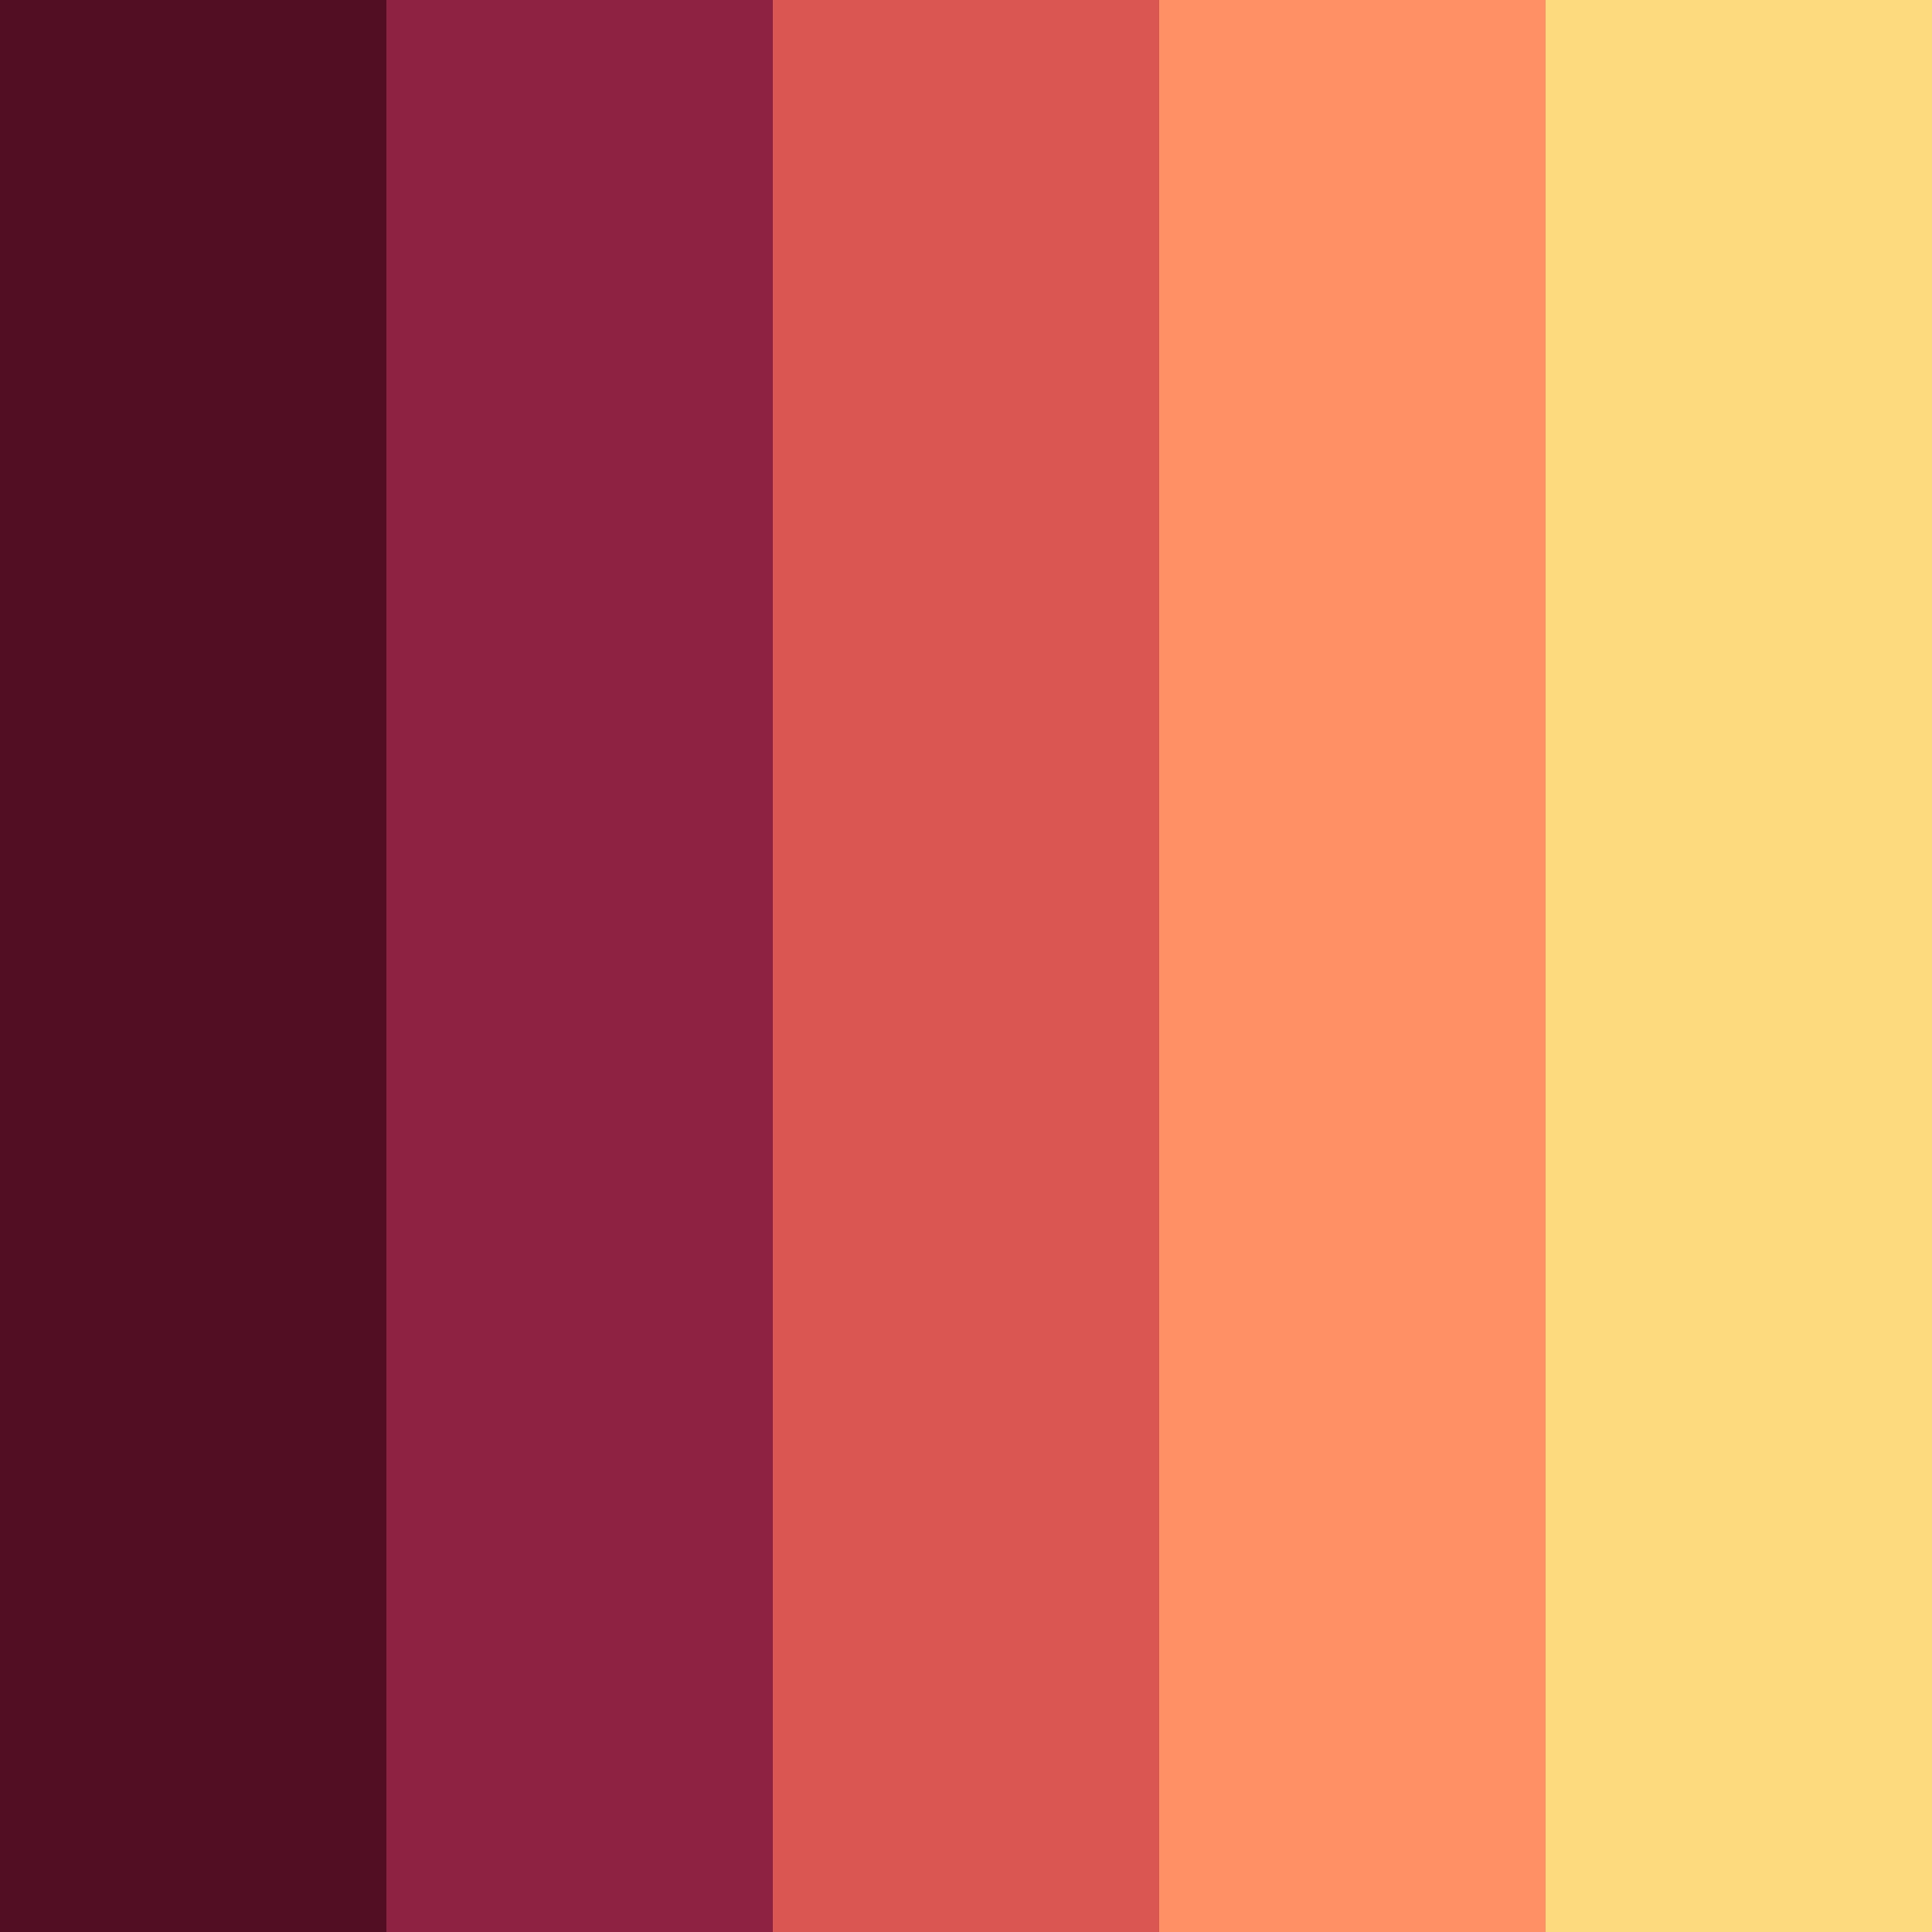 Flat Color Swatches Aco Autumn Edition Web3canvas